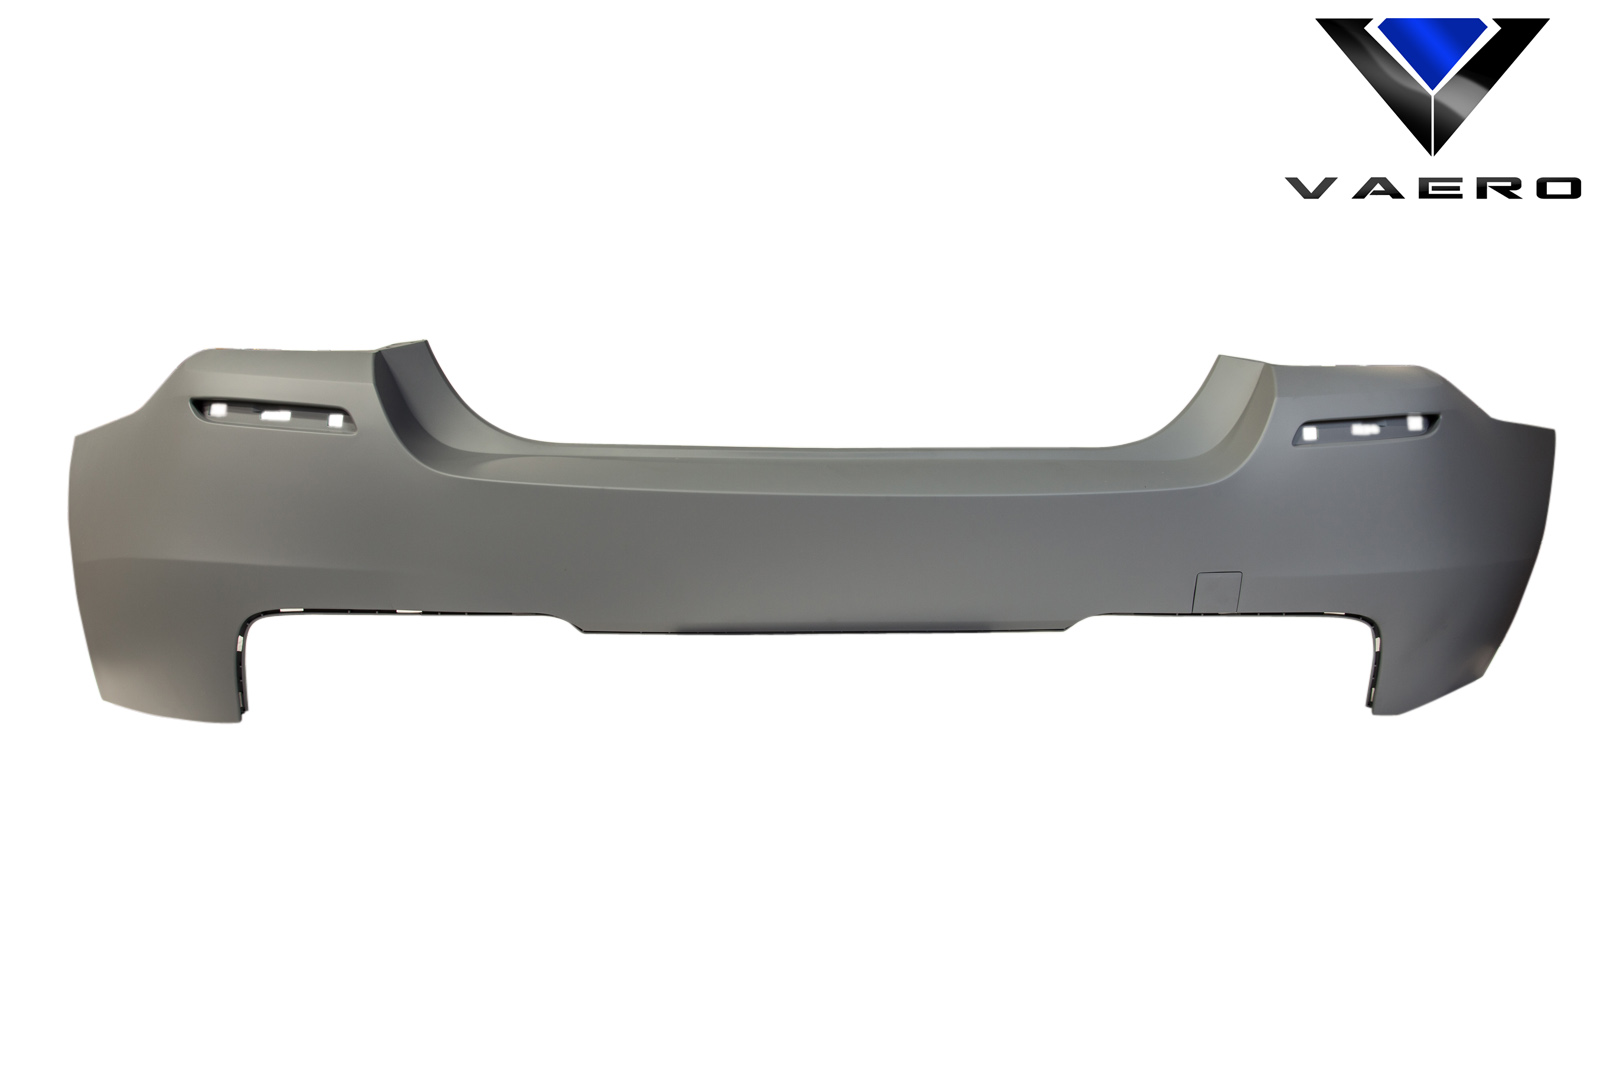 2016 BMW 5 Series 4DR Rear Bumper Bodykit - BMW 5 Series 528i F10 4DR Vaero M Sport Look Rear Bumper Cover ( without PDC ) - 2 Piece